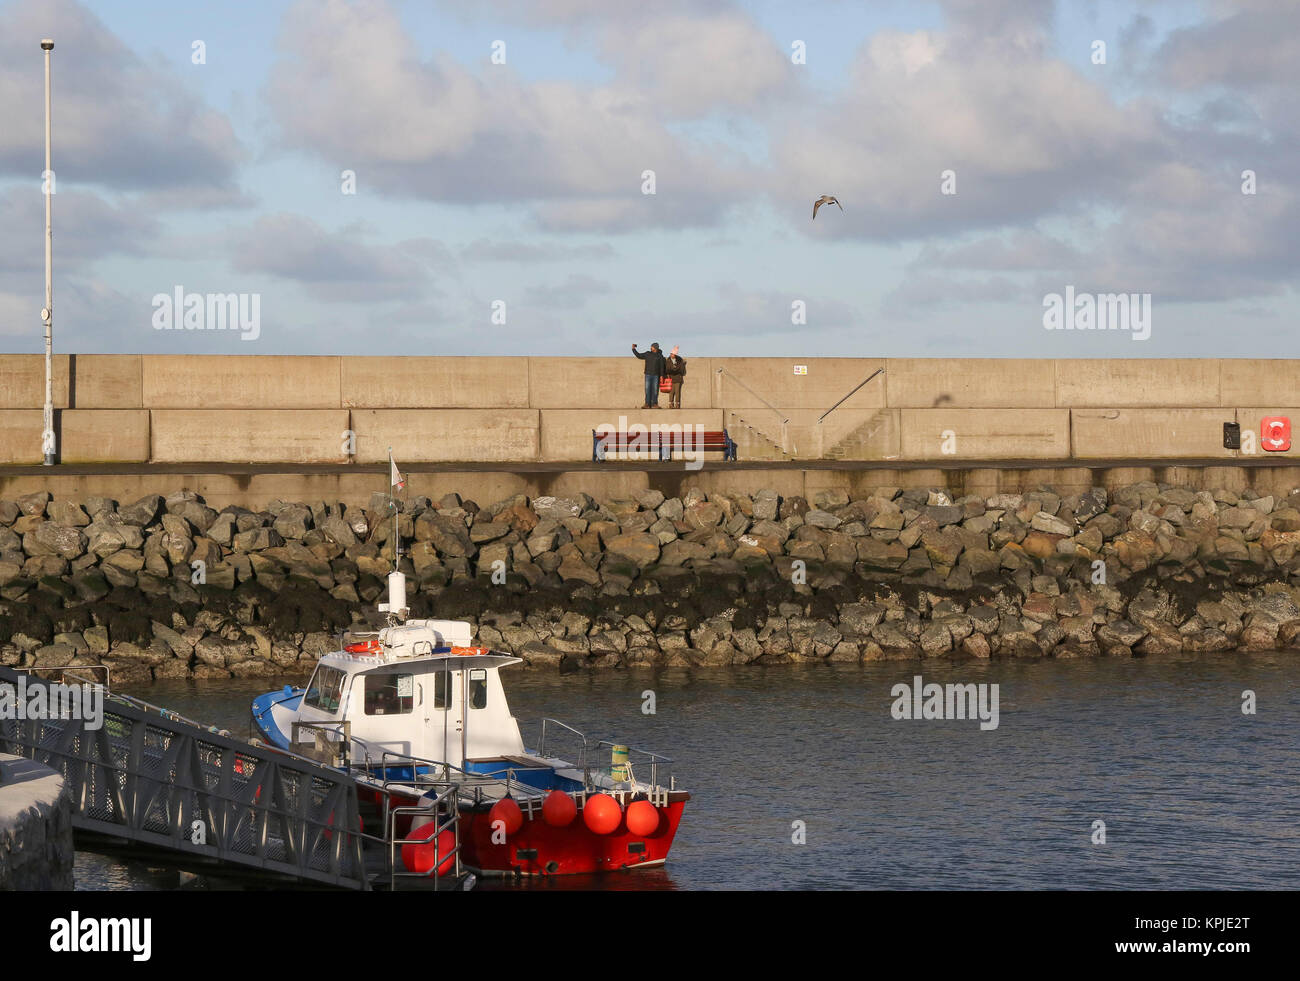 Bangor Marina, Bangor, County Down, Northern, Ireland. 15th Dec, 2017. UK weather - a dry and at times sunny day - Stock Image